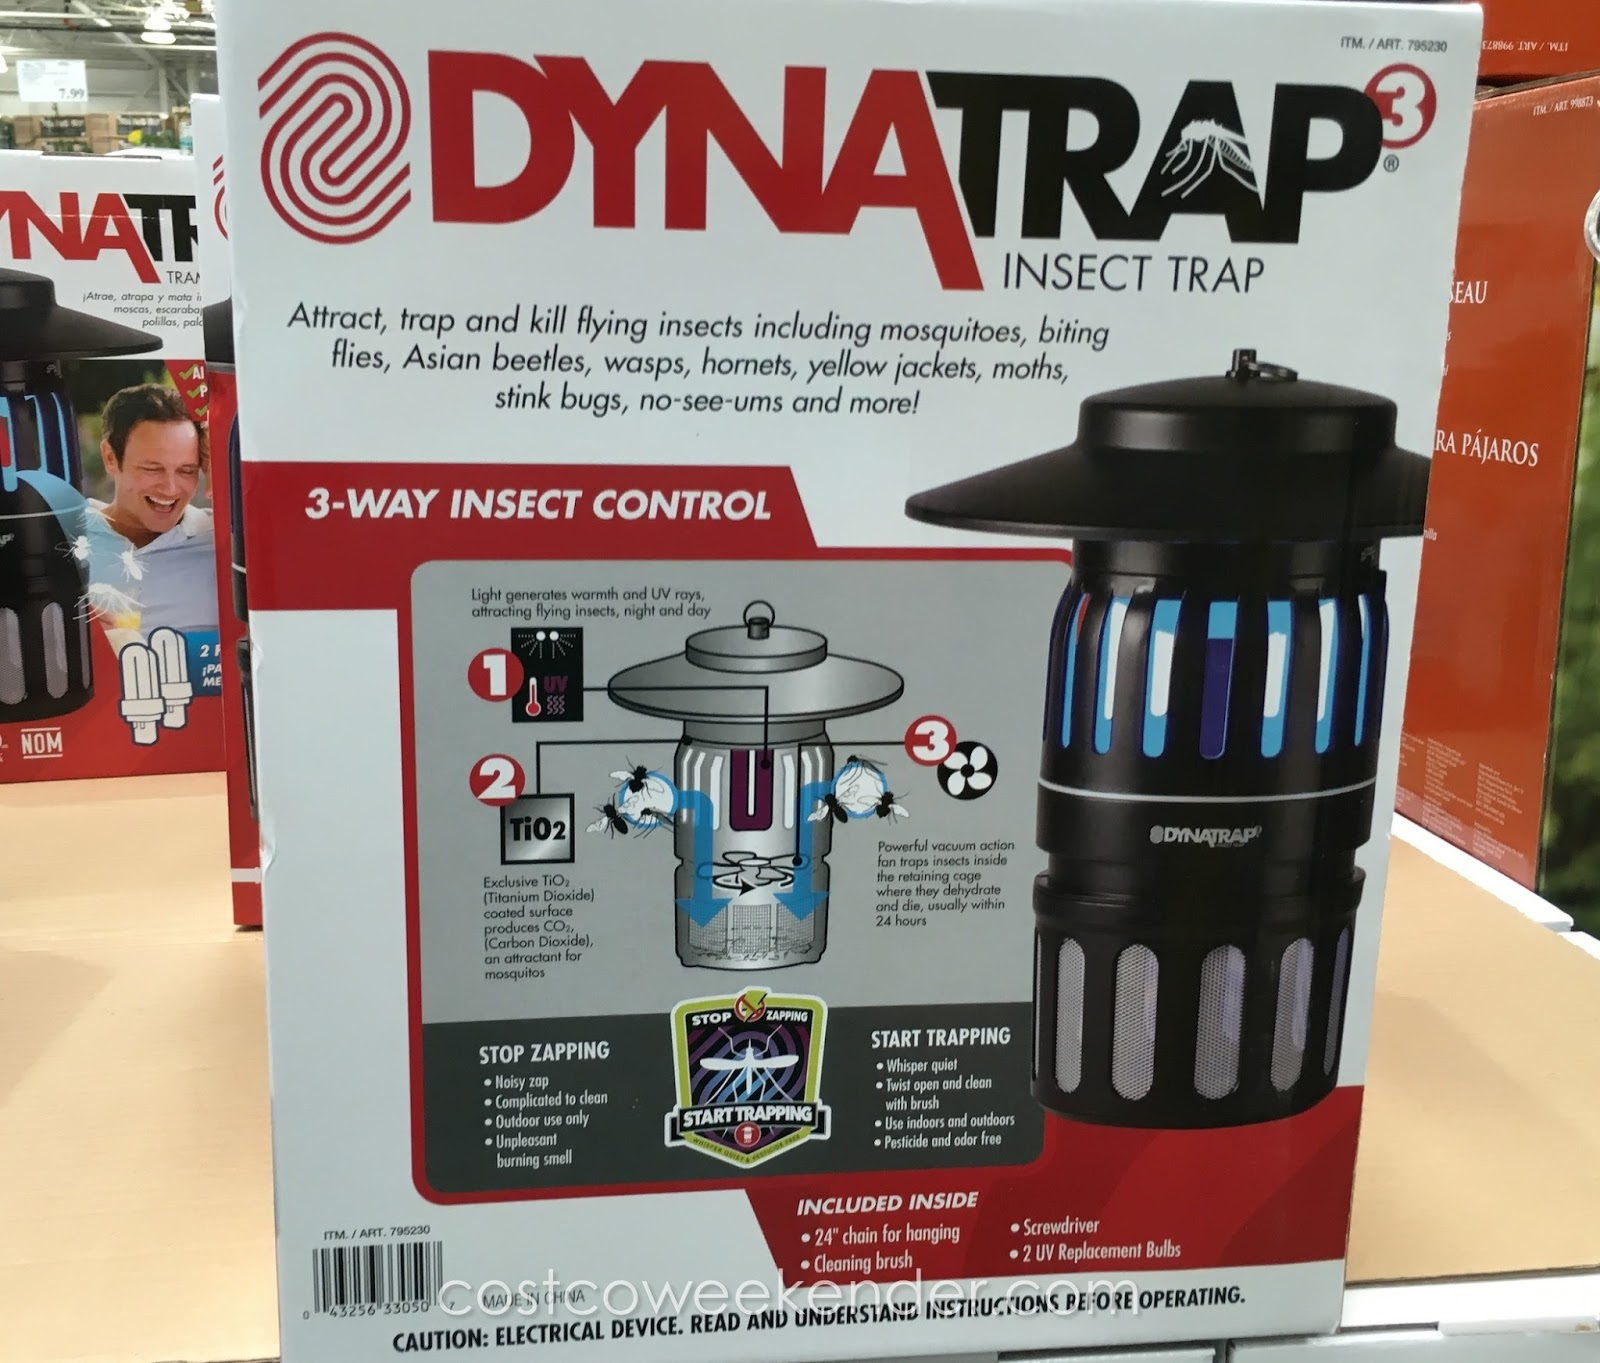 Costco 795230 - DynaTrap Insect Trap - great for when there are a lot of bugs and insects